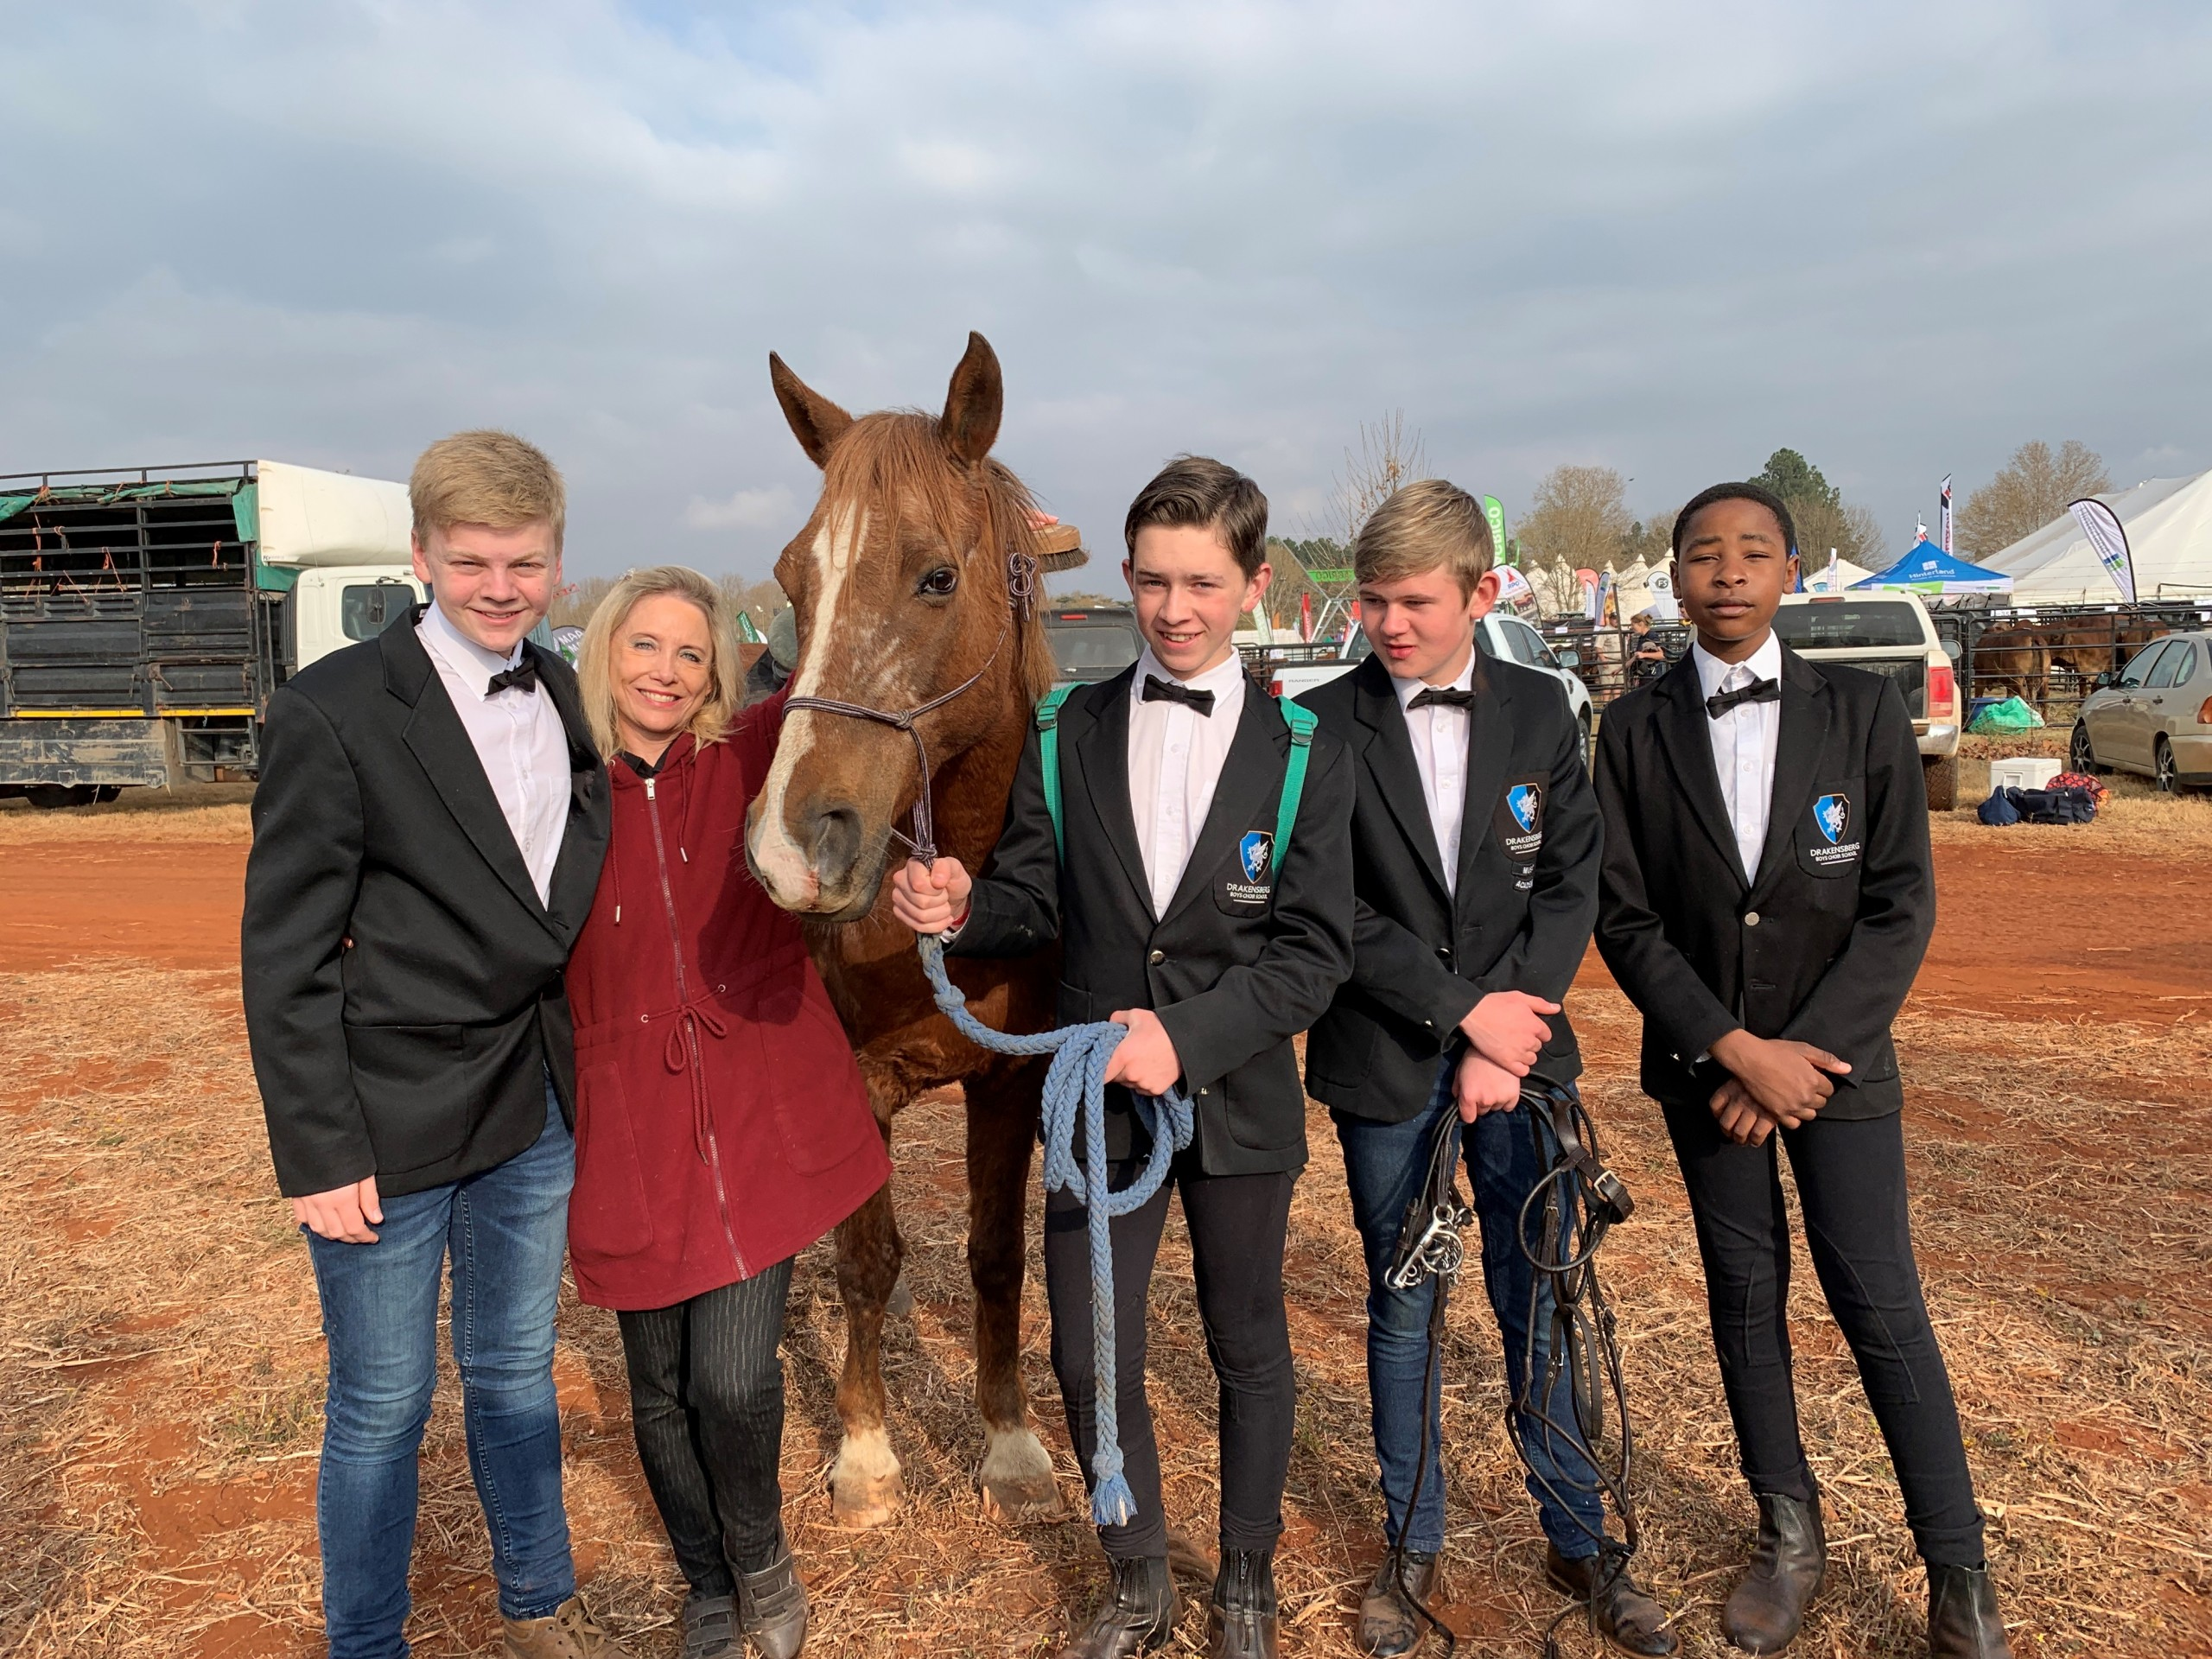 DBCS takes part in first horse show